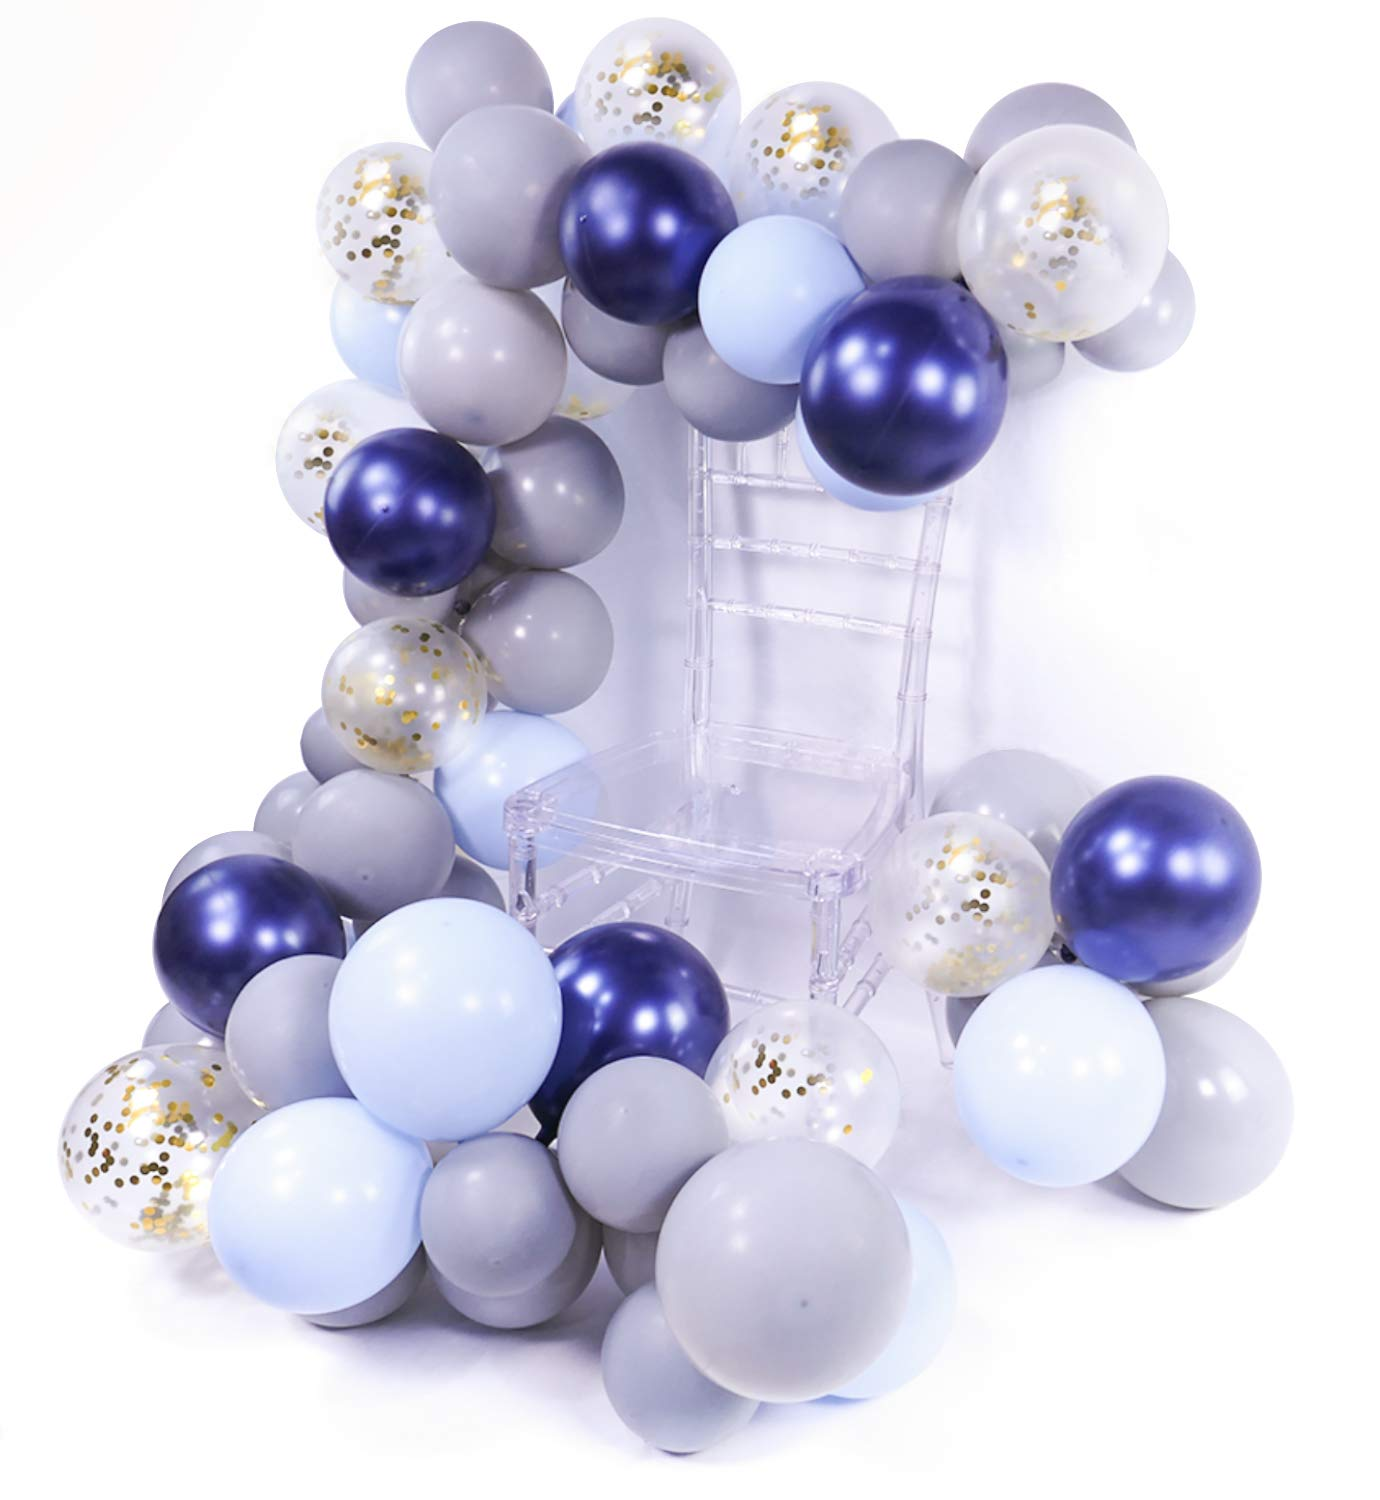 METABLE 100 pcs 12/10 Inch Gray Navy Blue Baby and Gold Confetti Party Balloons for Boy Shower Decorations